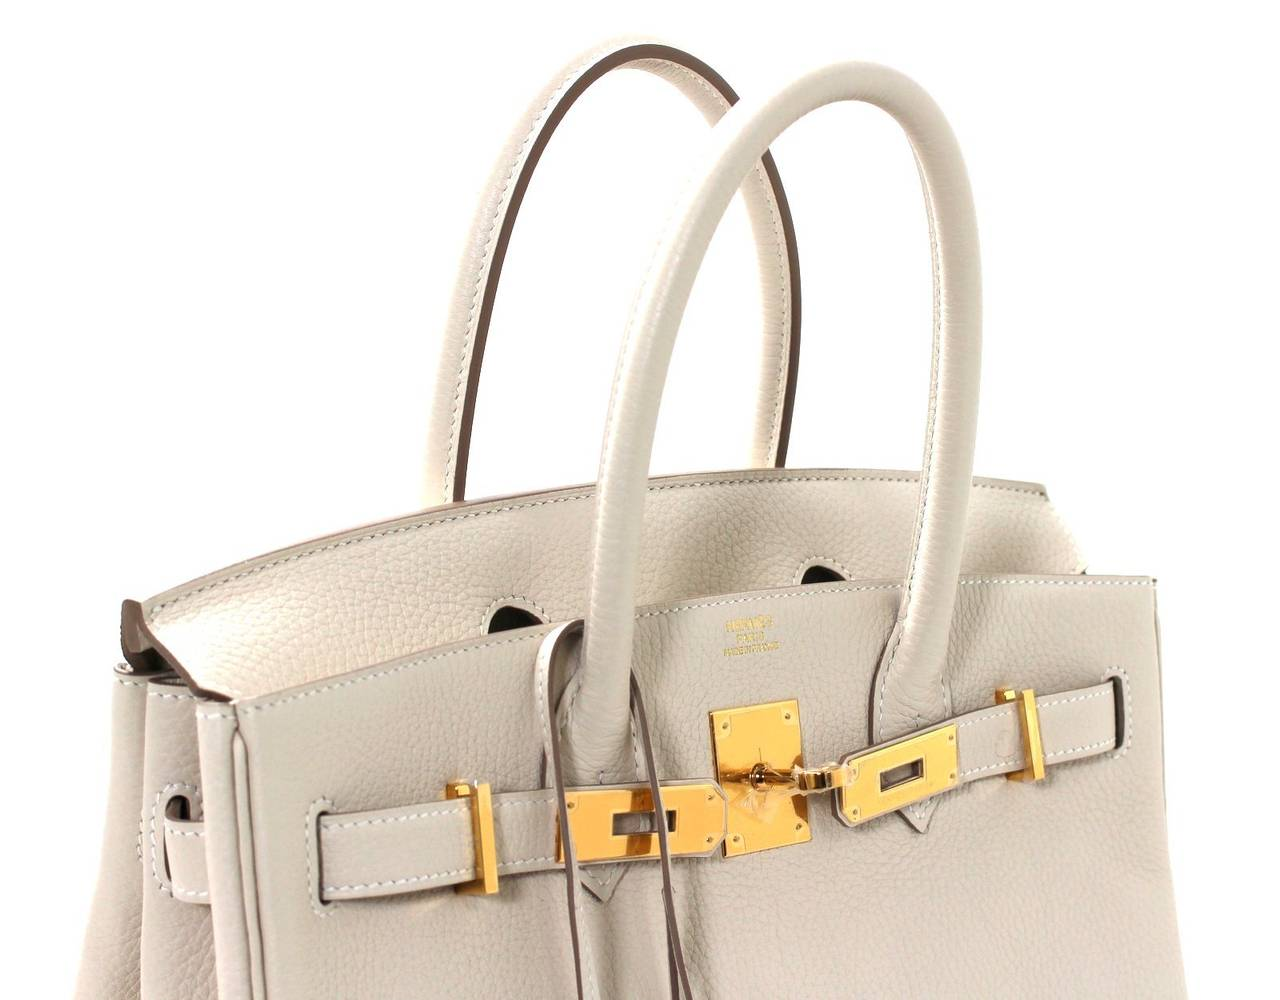 Hermes Birkin Bag in Craie Clemence with Gold- Bone color 30 cm 5